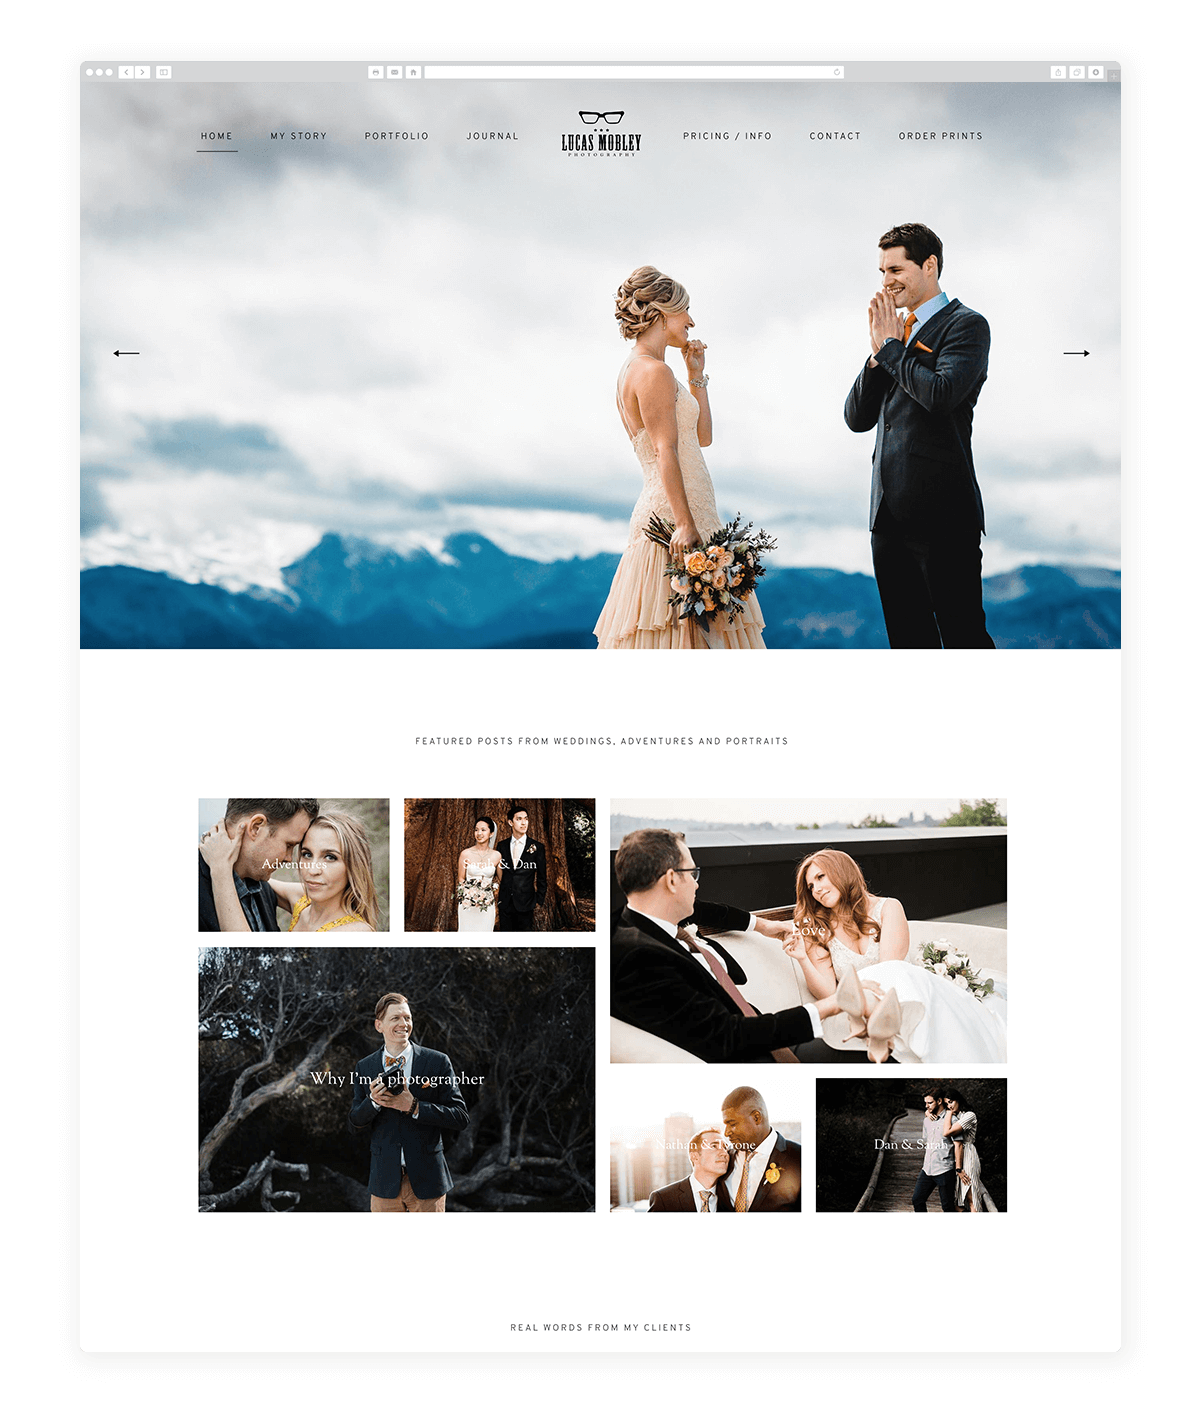 15 amazing photography website built with Fiji theme, Lucas Mobley photography